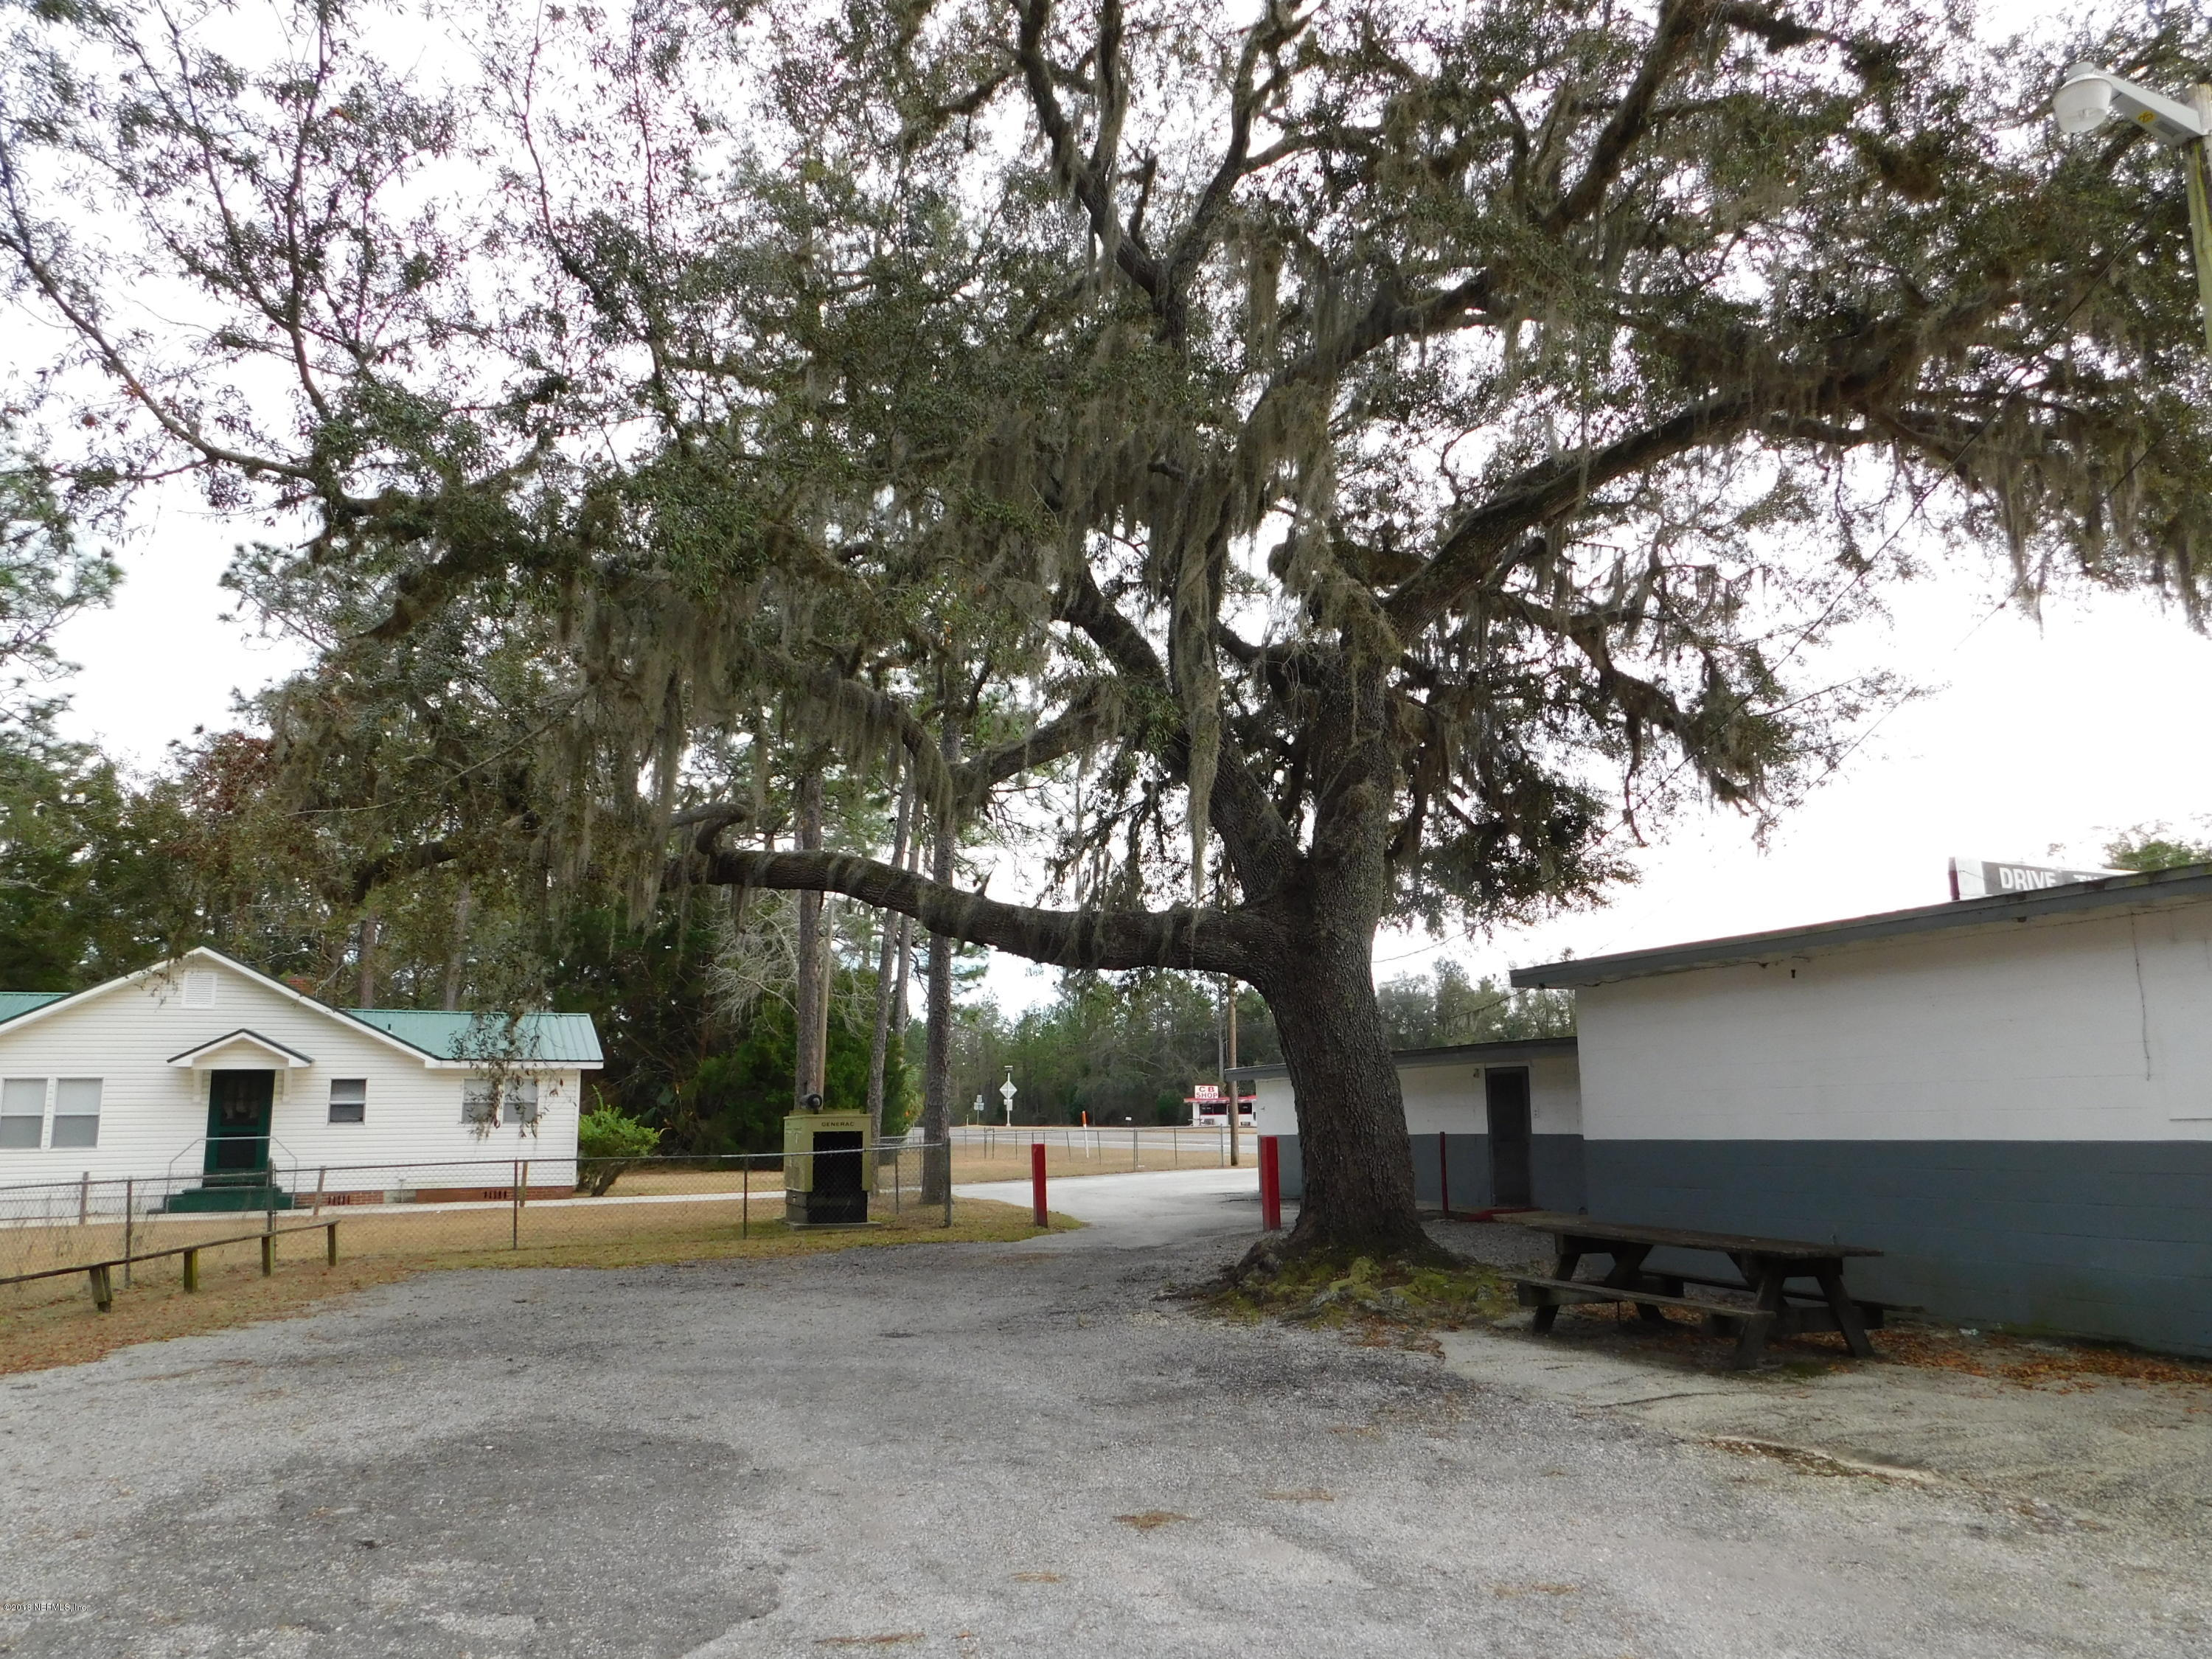 555018 US HWY 1, HILLIARD, FLORIDA 32046, 4 Bedrooms Bedrooms, ,2 BathroomsBathrooms,Residential - single family,For sale,US HWY 1,918336